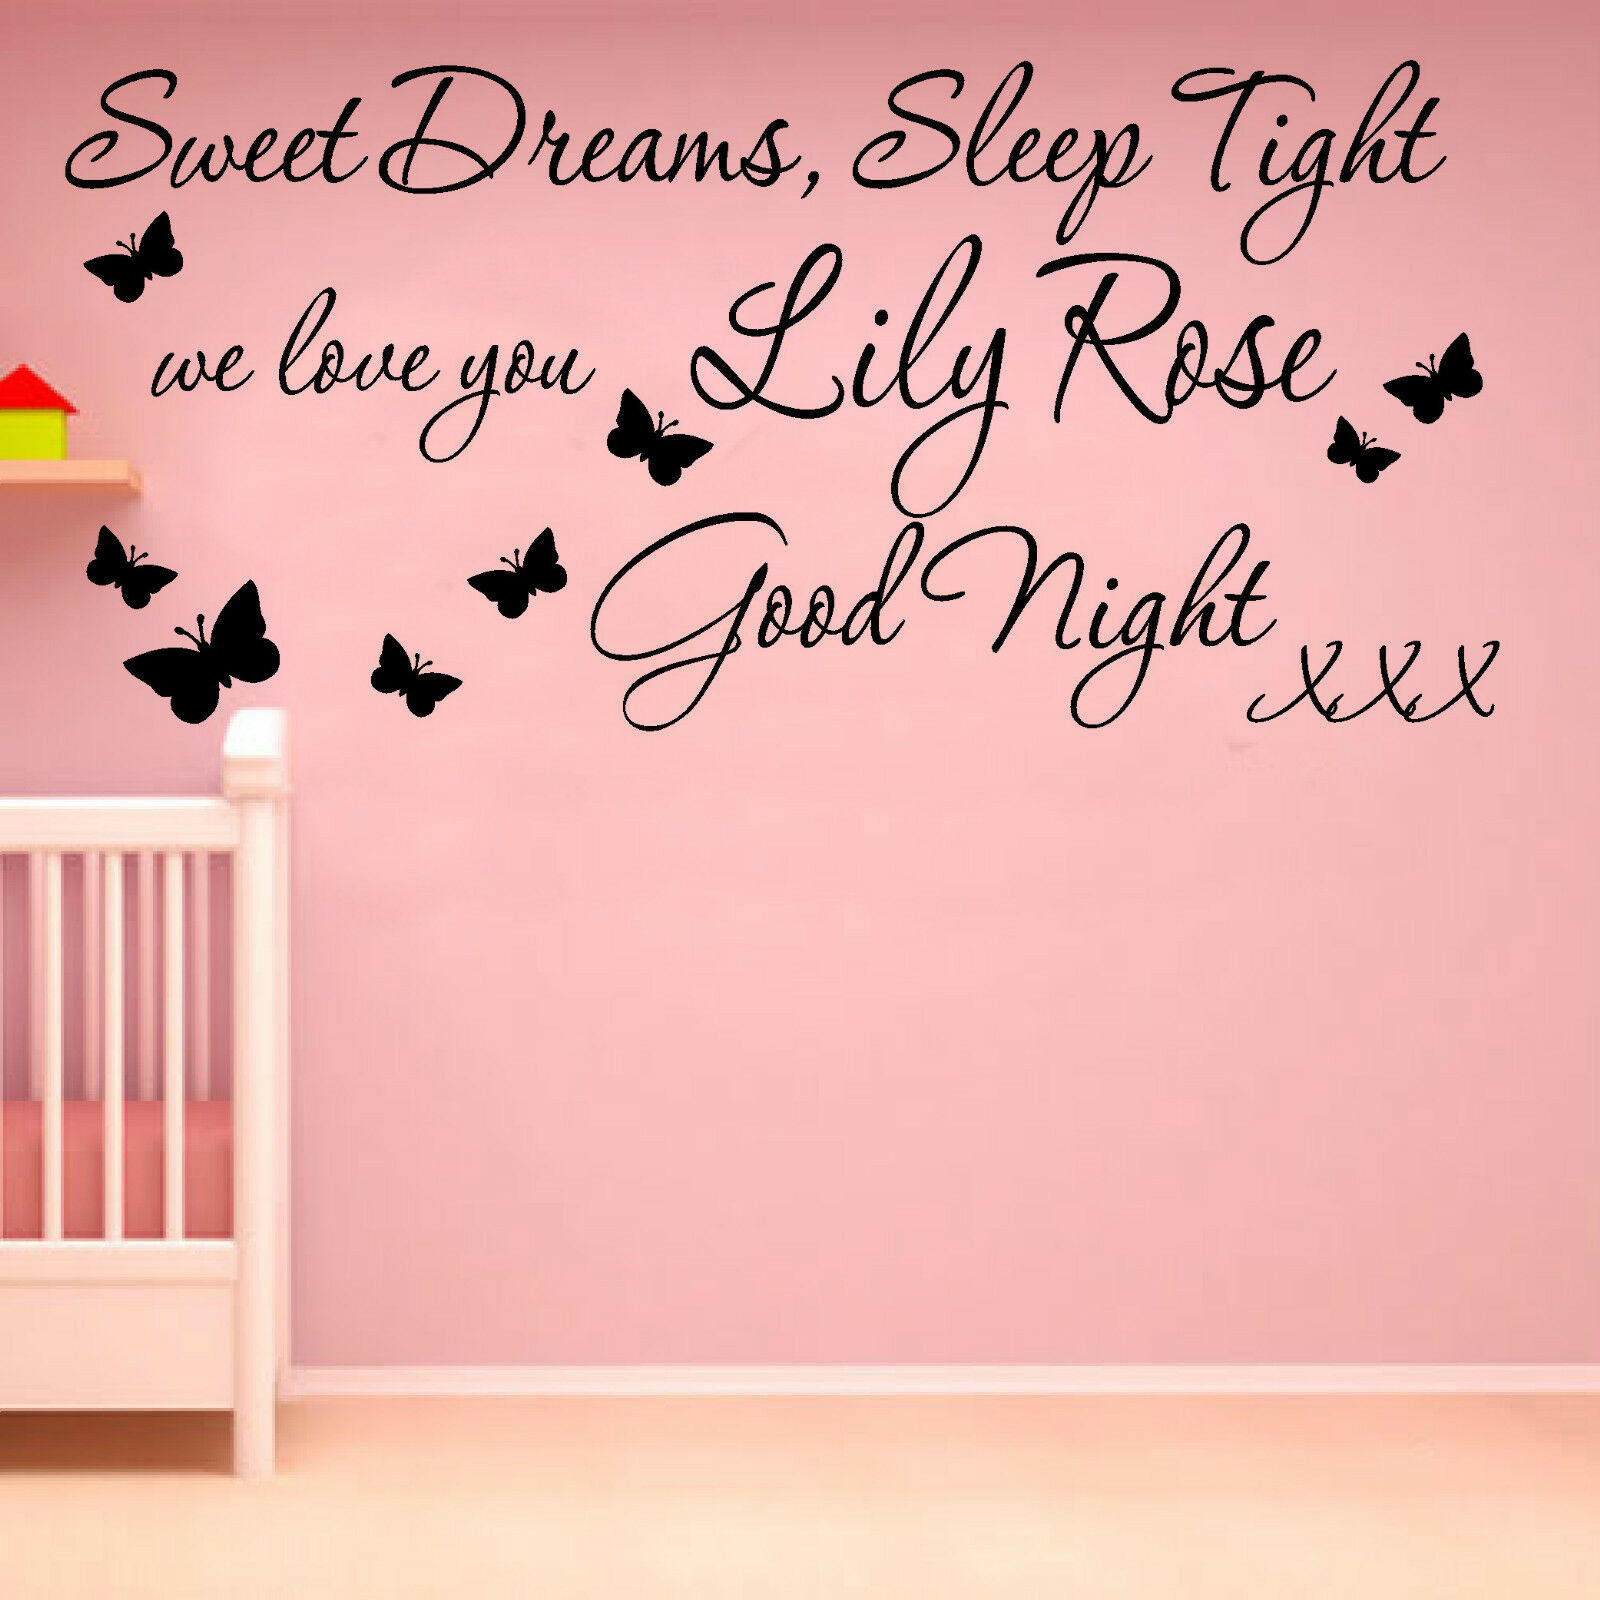 sweet dreams wall art sticker quote butterflies girls bedroom